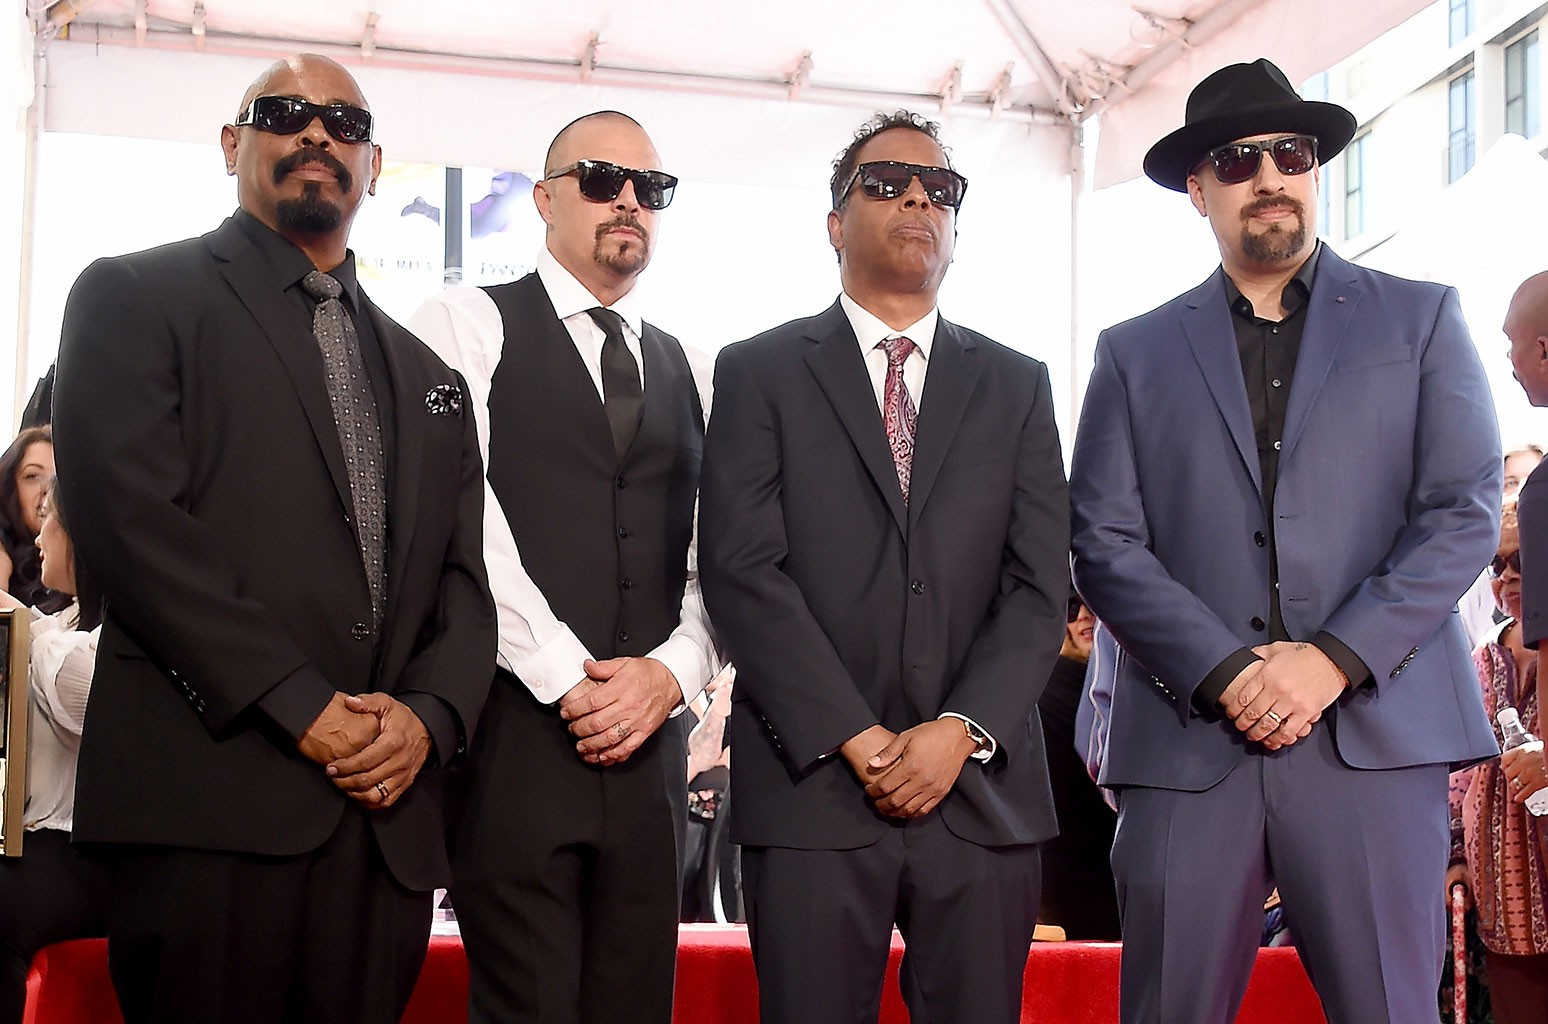 B-Real, Santana & Snoop Dogg's Covid-Proof Side Hustle? Selling Marijuana